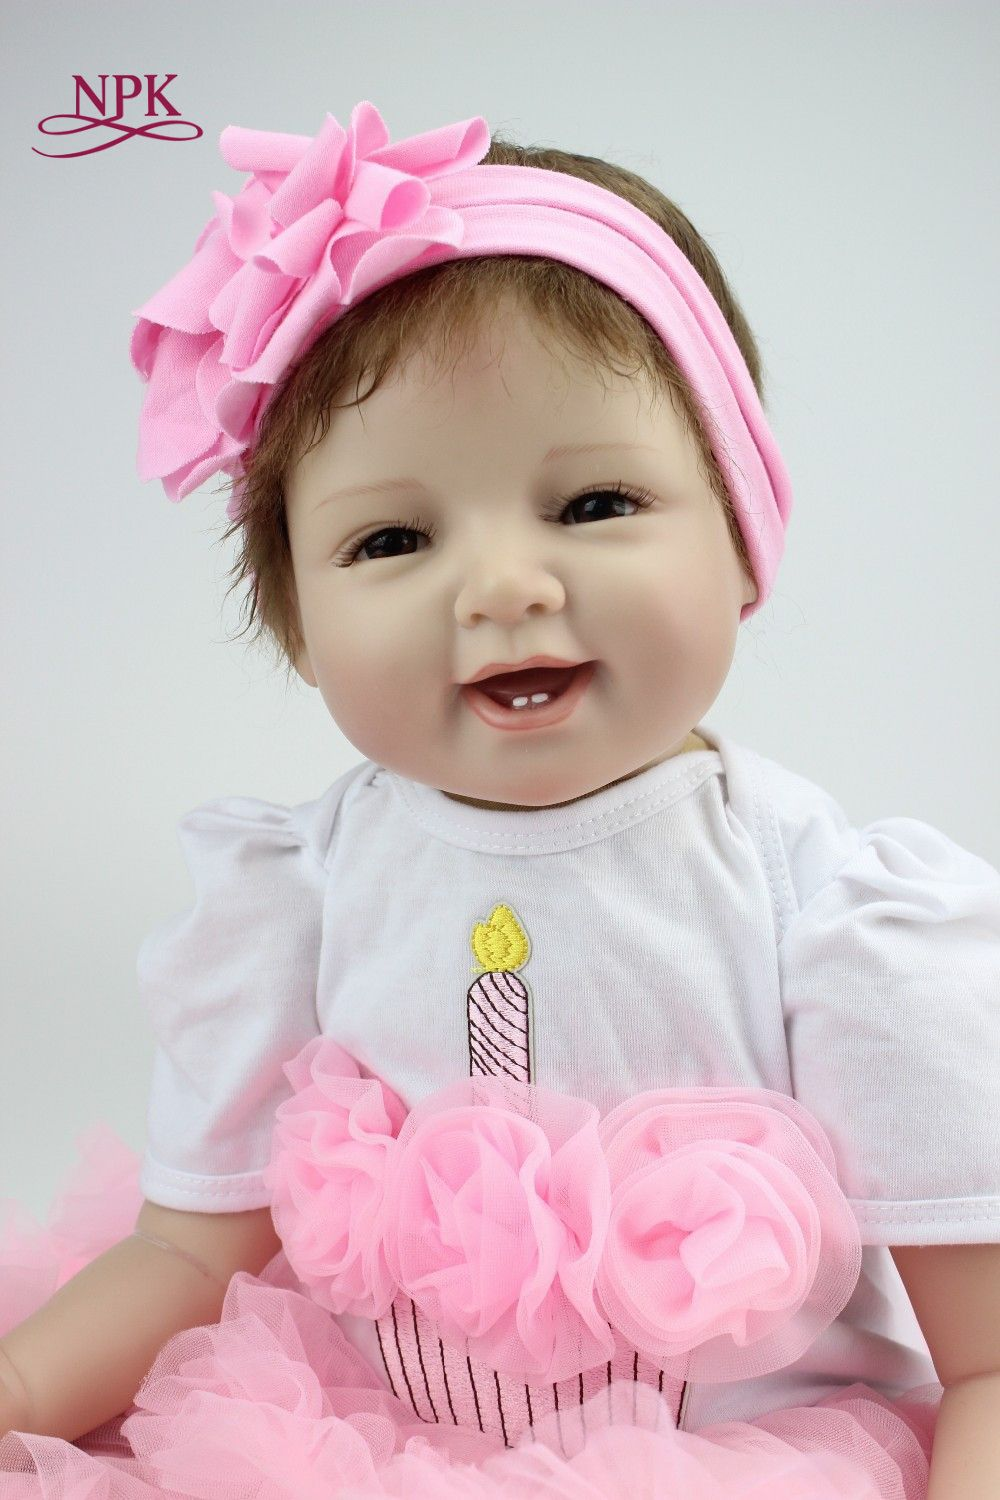 NPK 22' 55cm Silicone Baby Reborn Dolls With Cotton Body Dressed in Nice Sweater Lifelike Doll Reborn Babies Toys for Girls